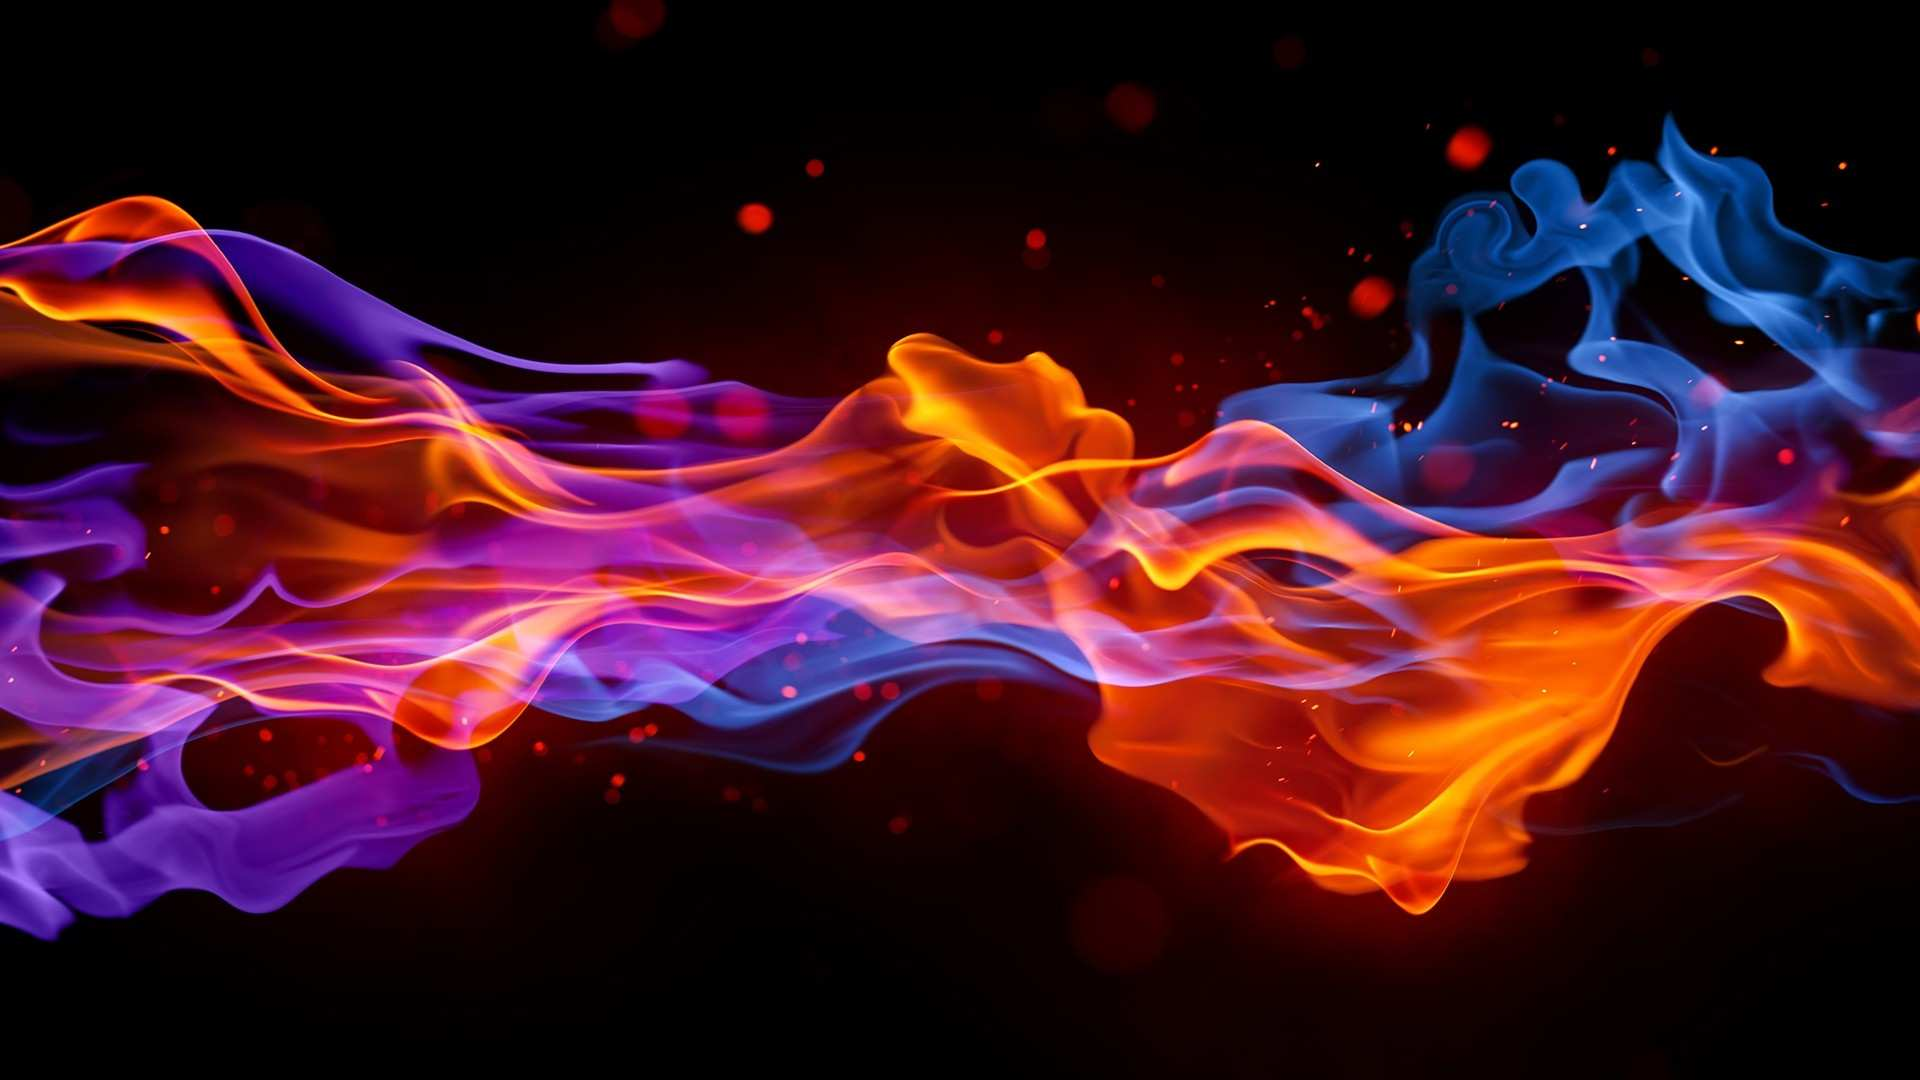 20 Fire Themed Wallpapers